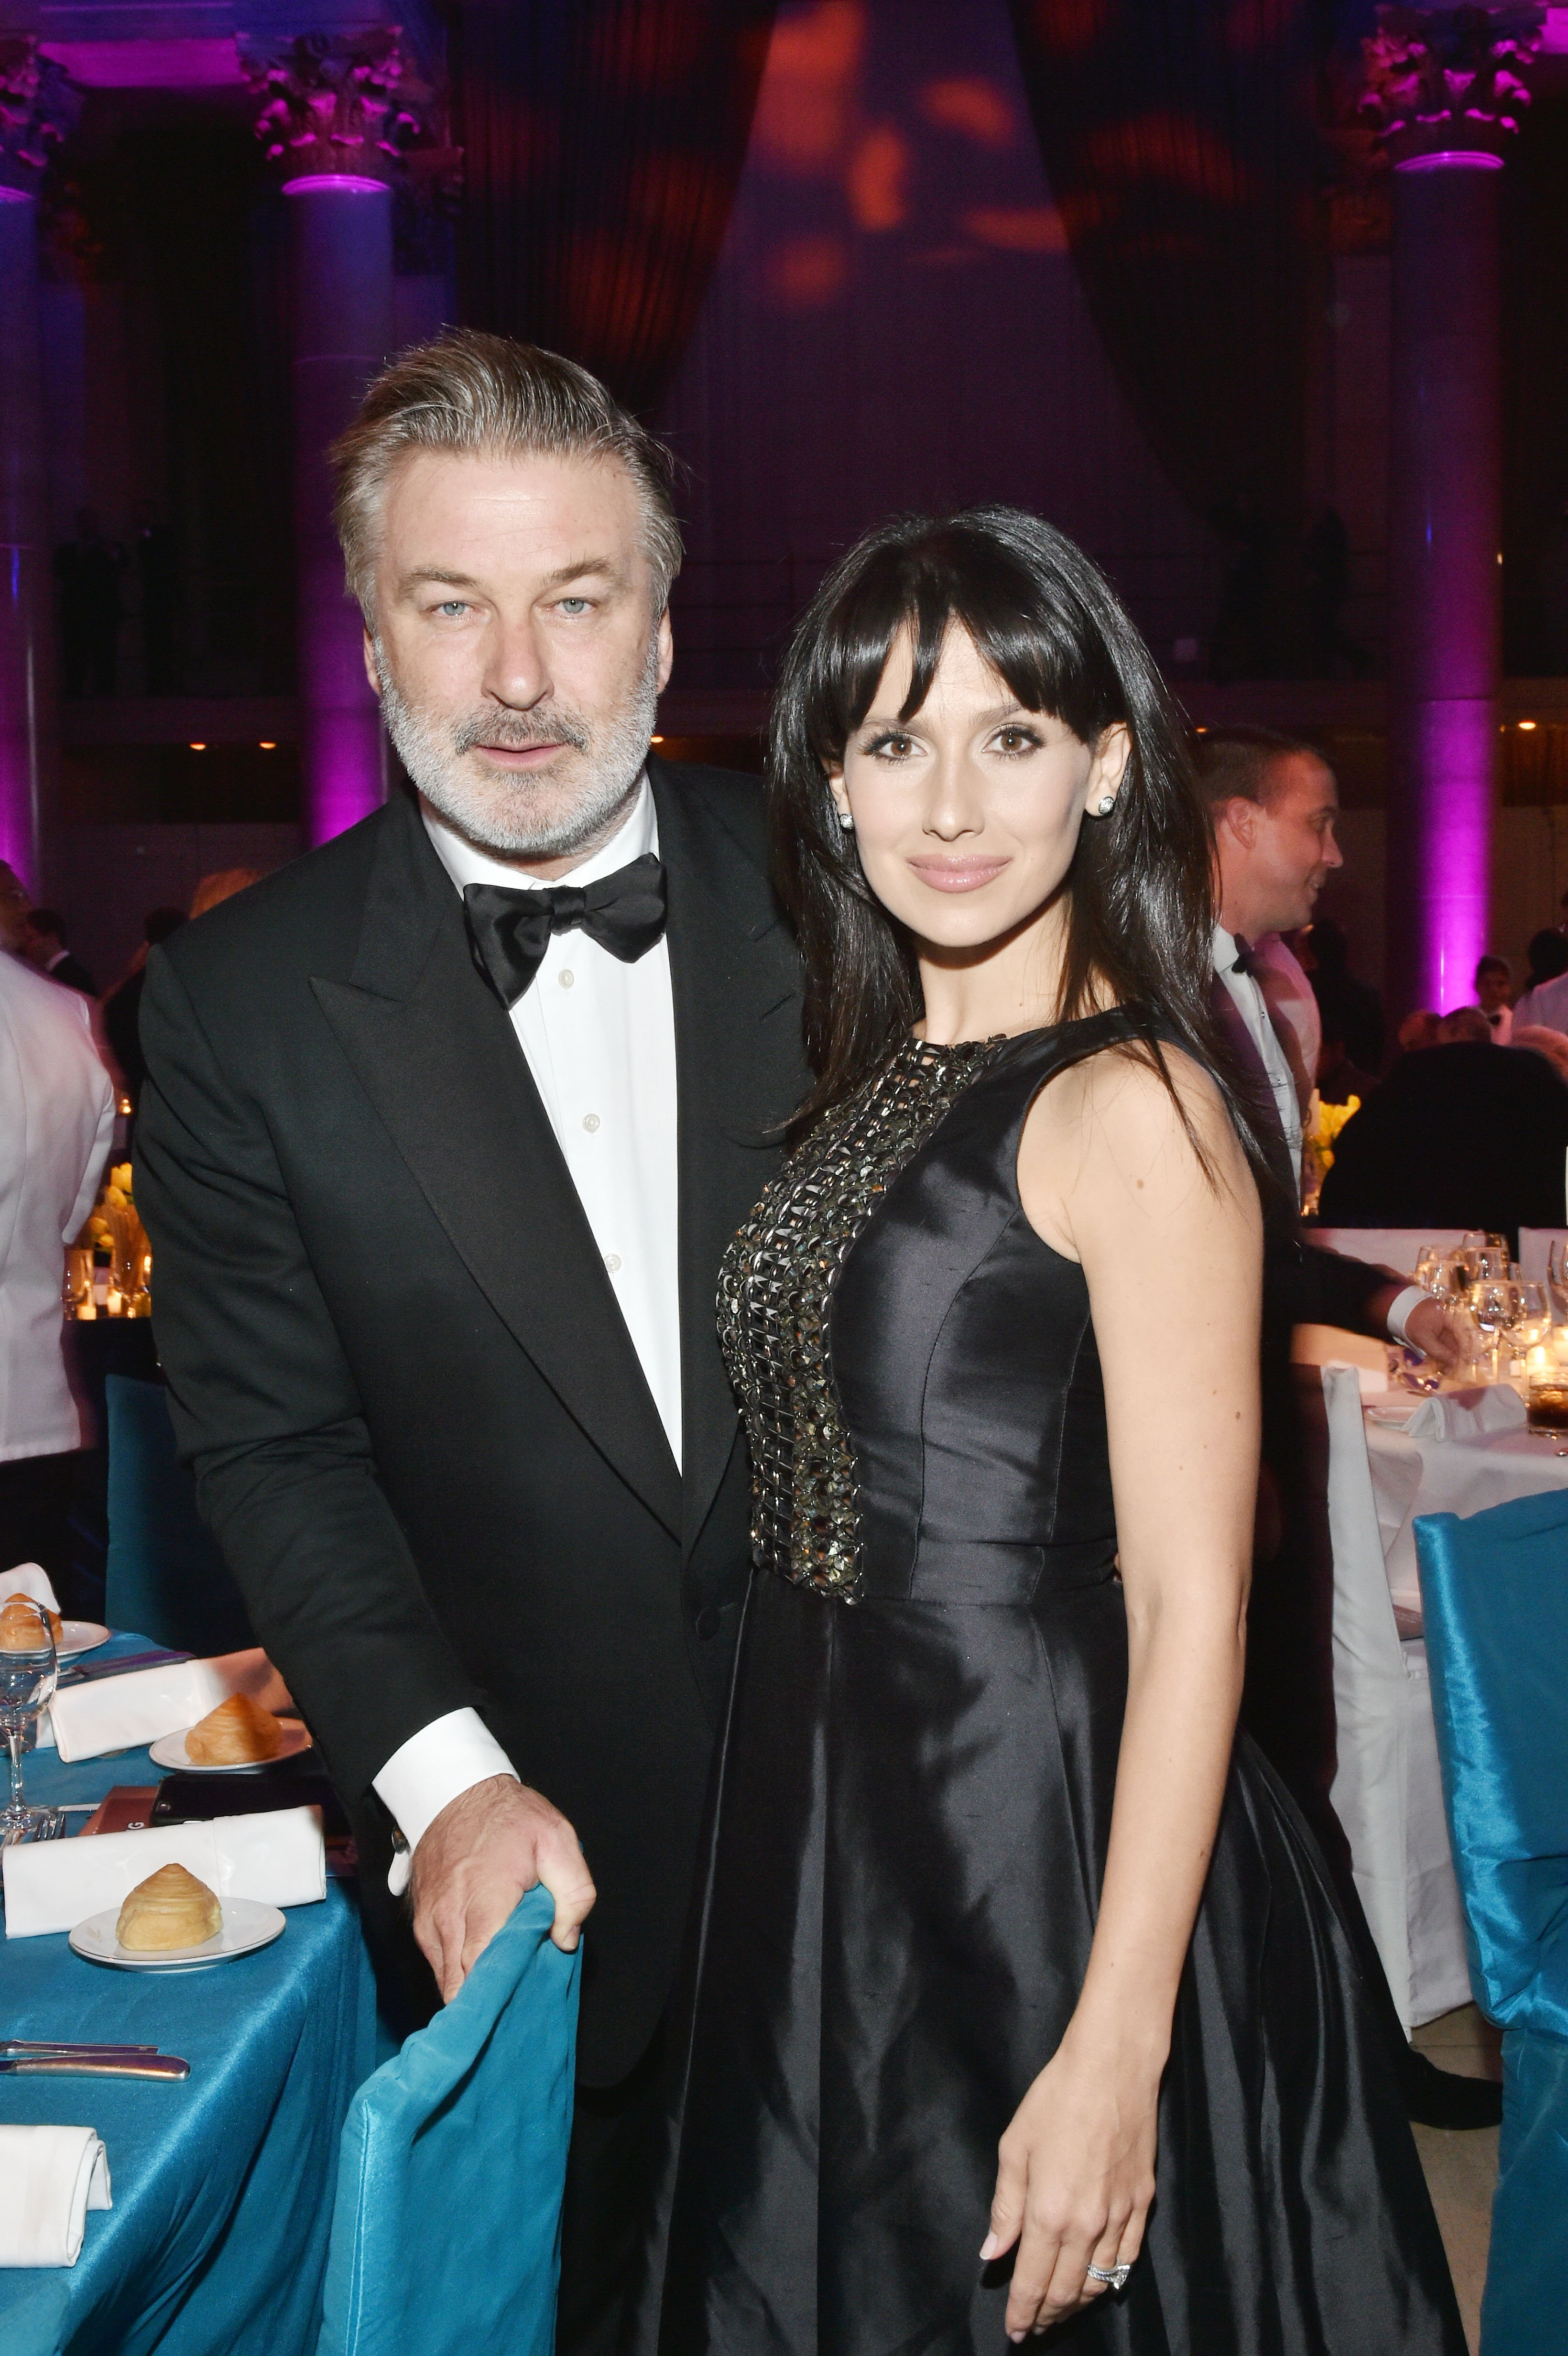 Alec and Hilaria Baldwin pictured at the 14th annual Elton John AIDS Foundation event, 2015. | Photo: Getty Images